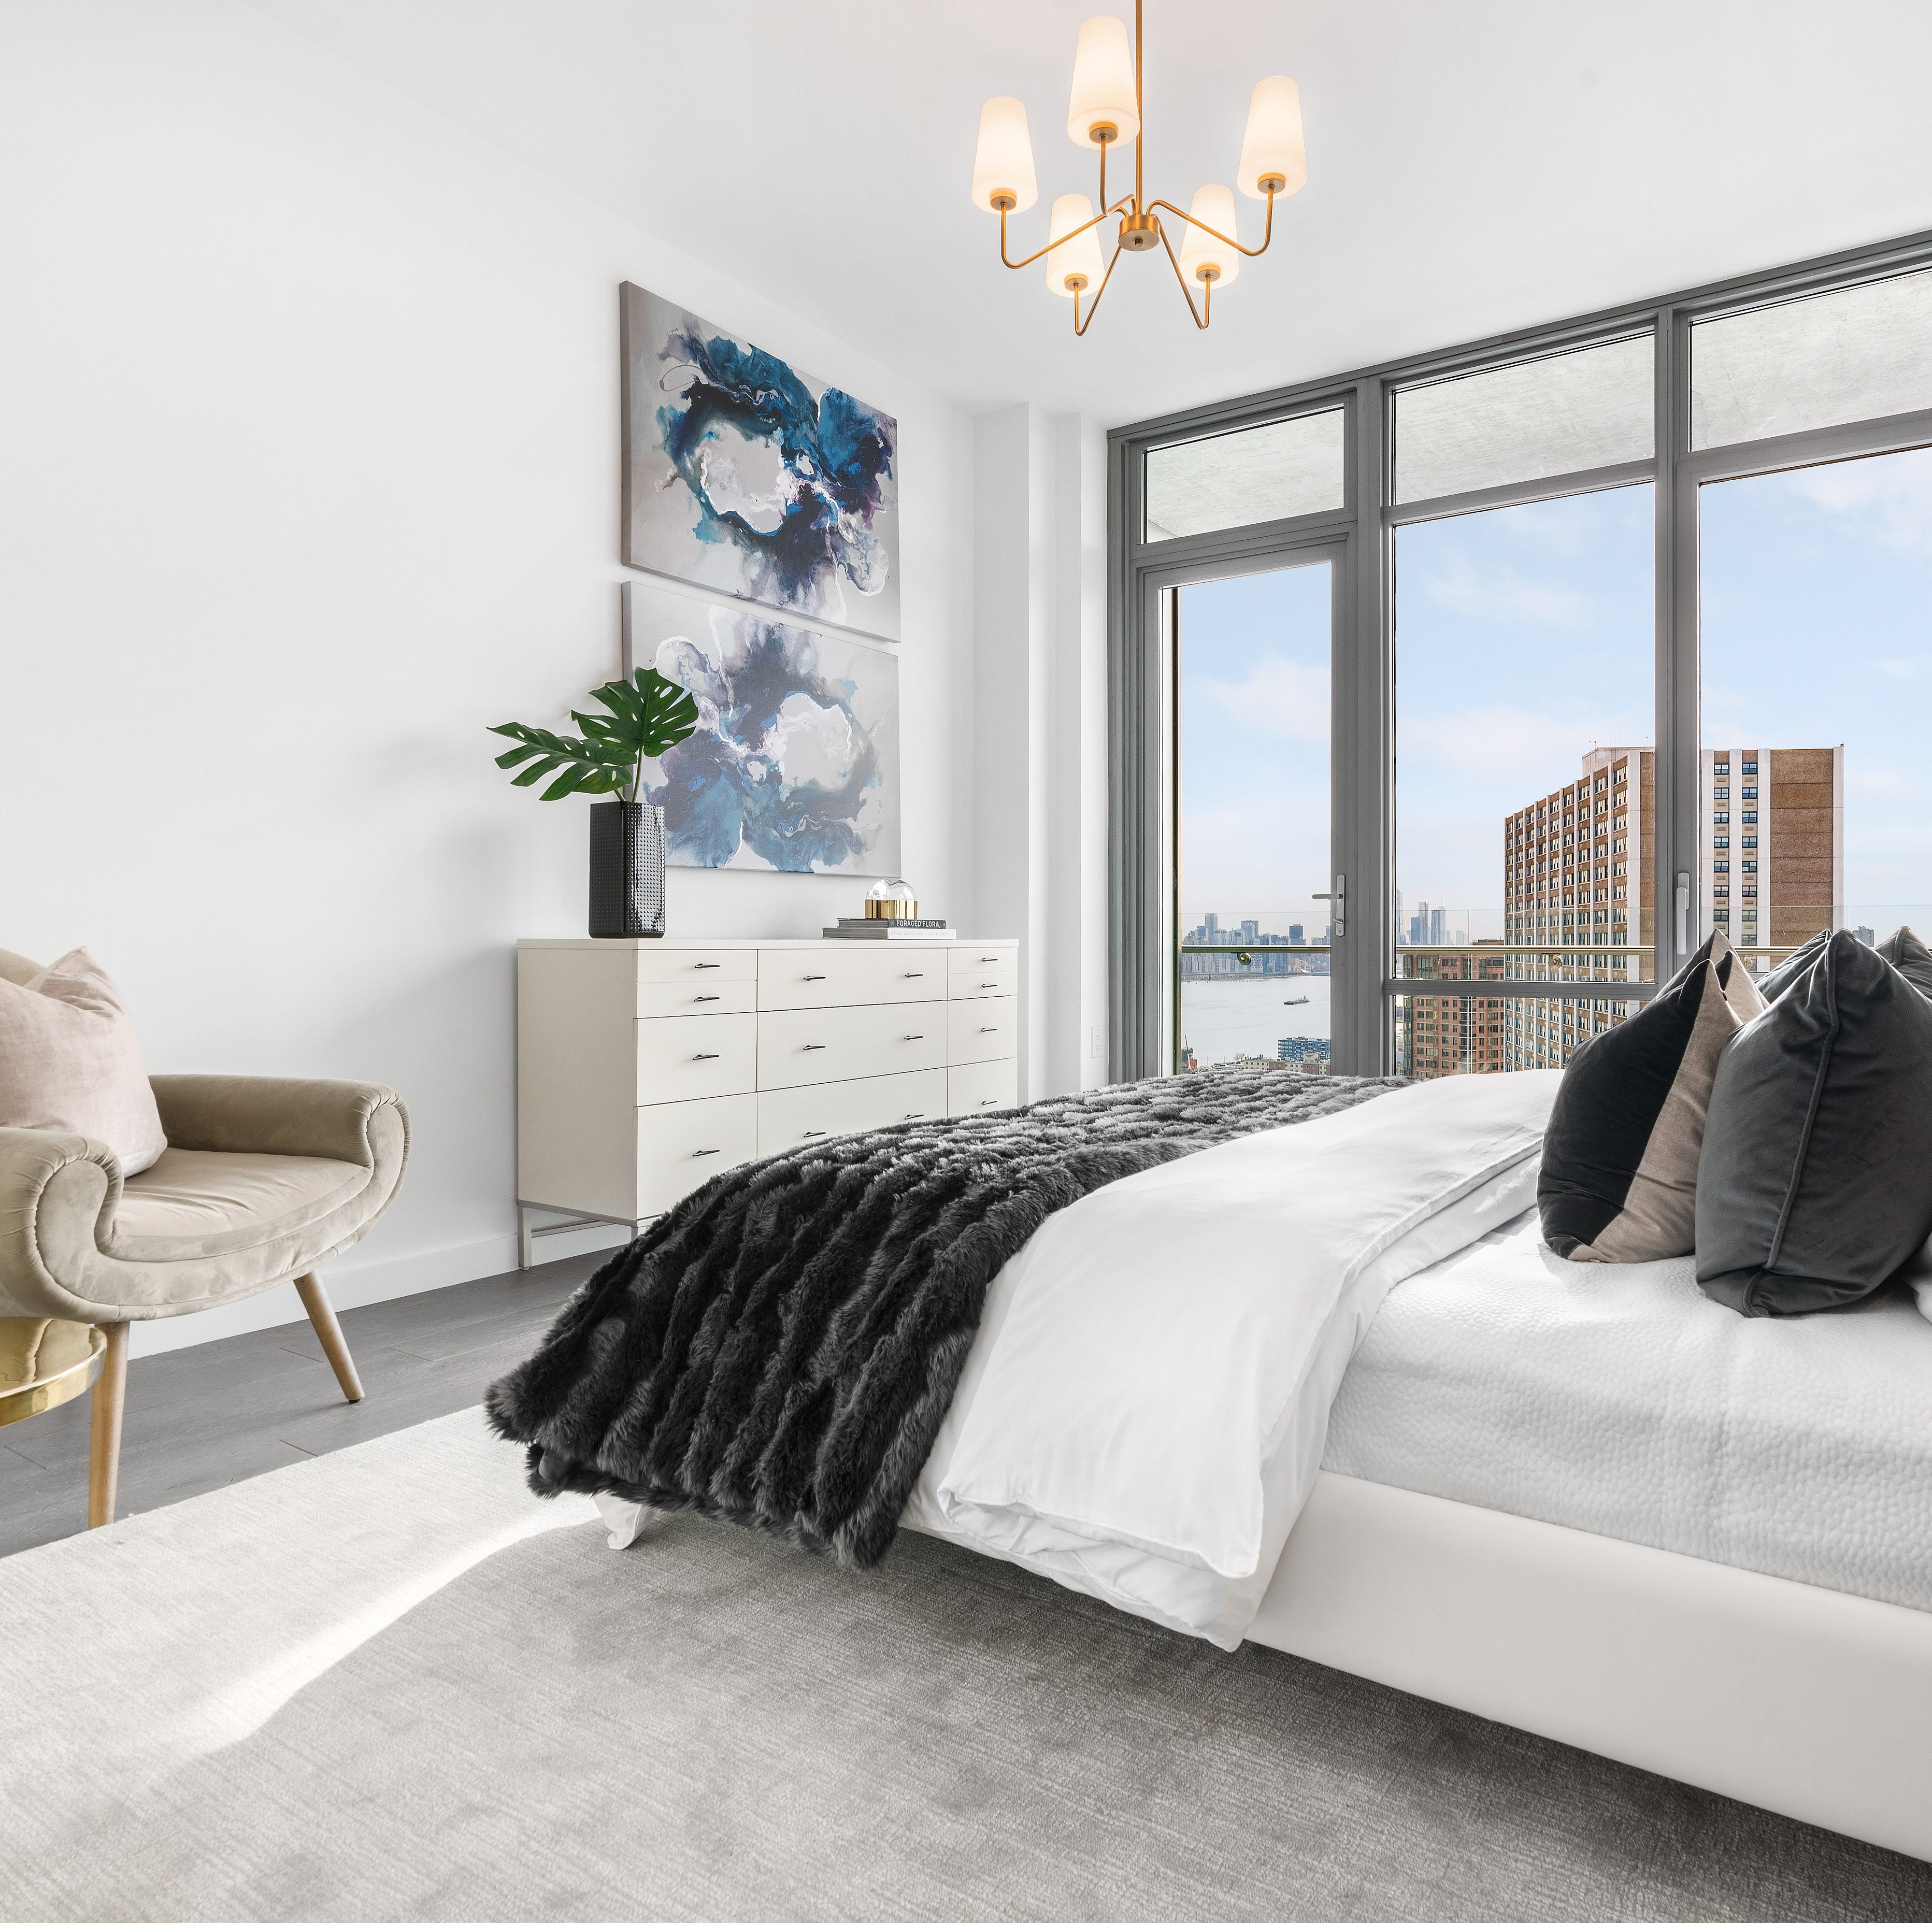 New penthouse model debuts at One Park condos